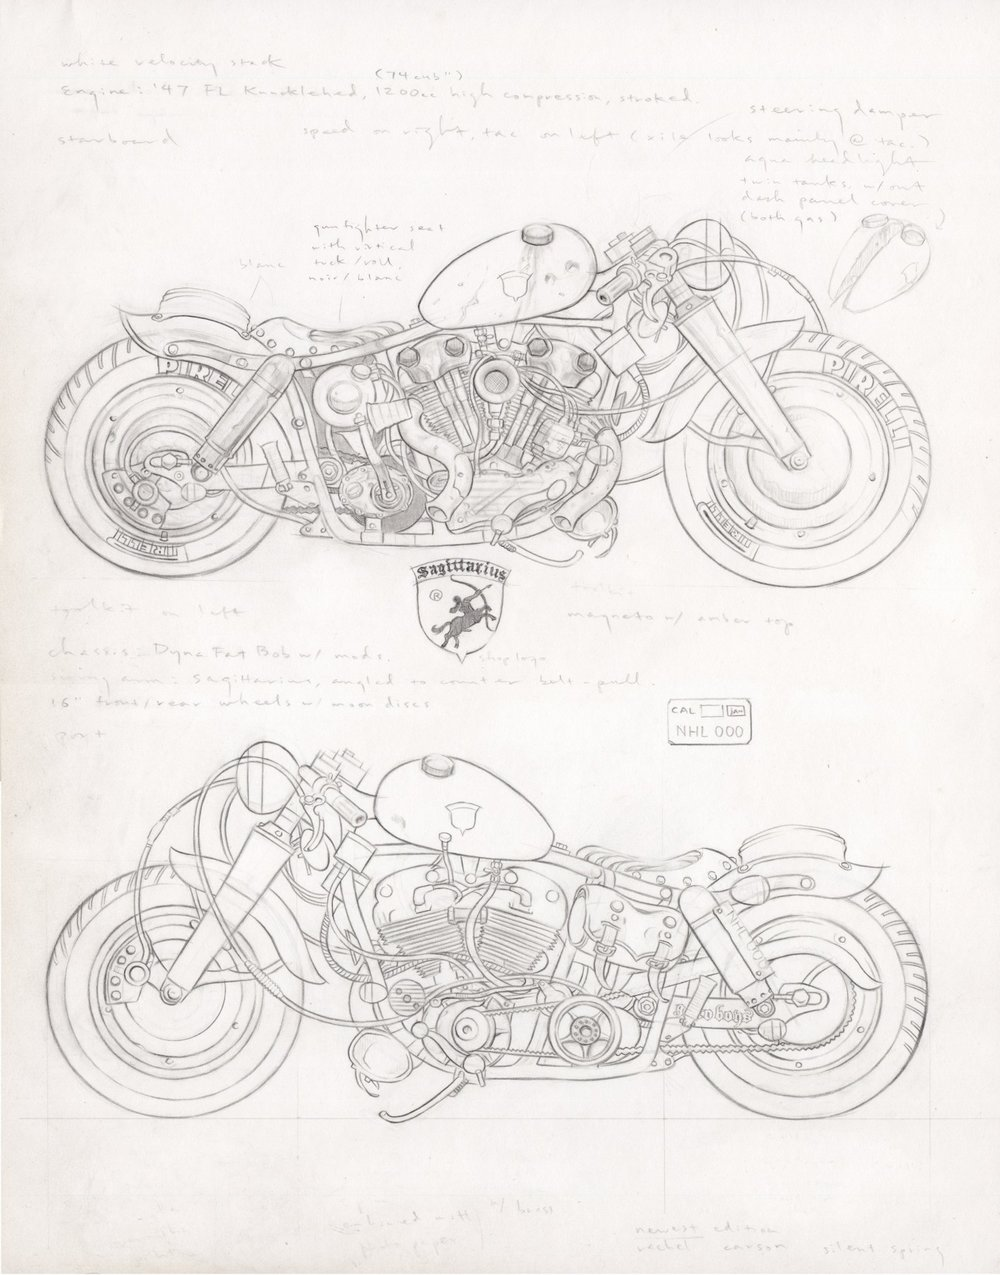 Xile's '47 Knucklehead, 2014, pencil on paper, 14 x 11 inches